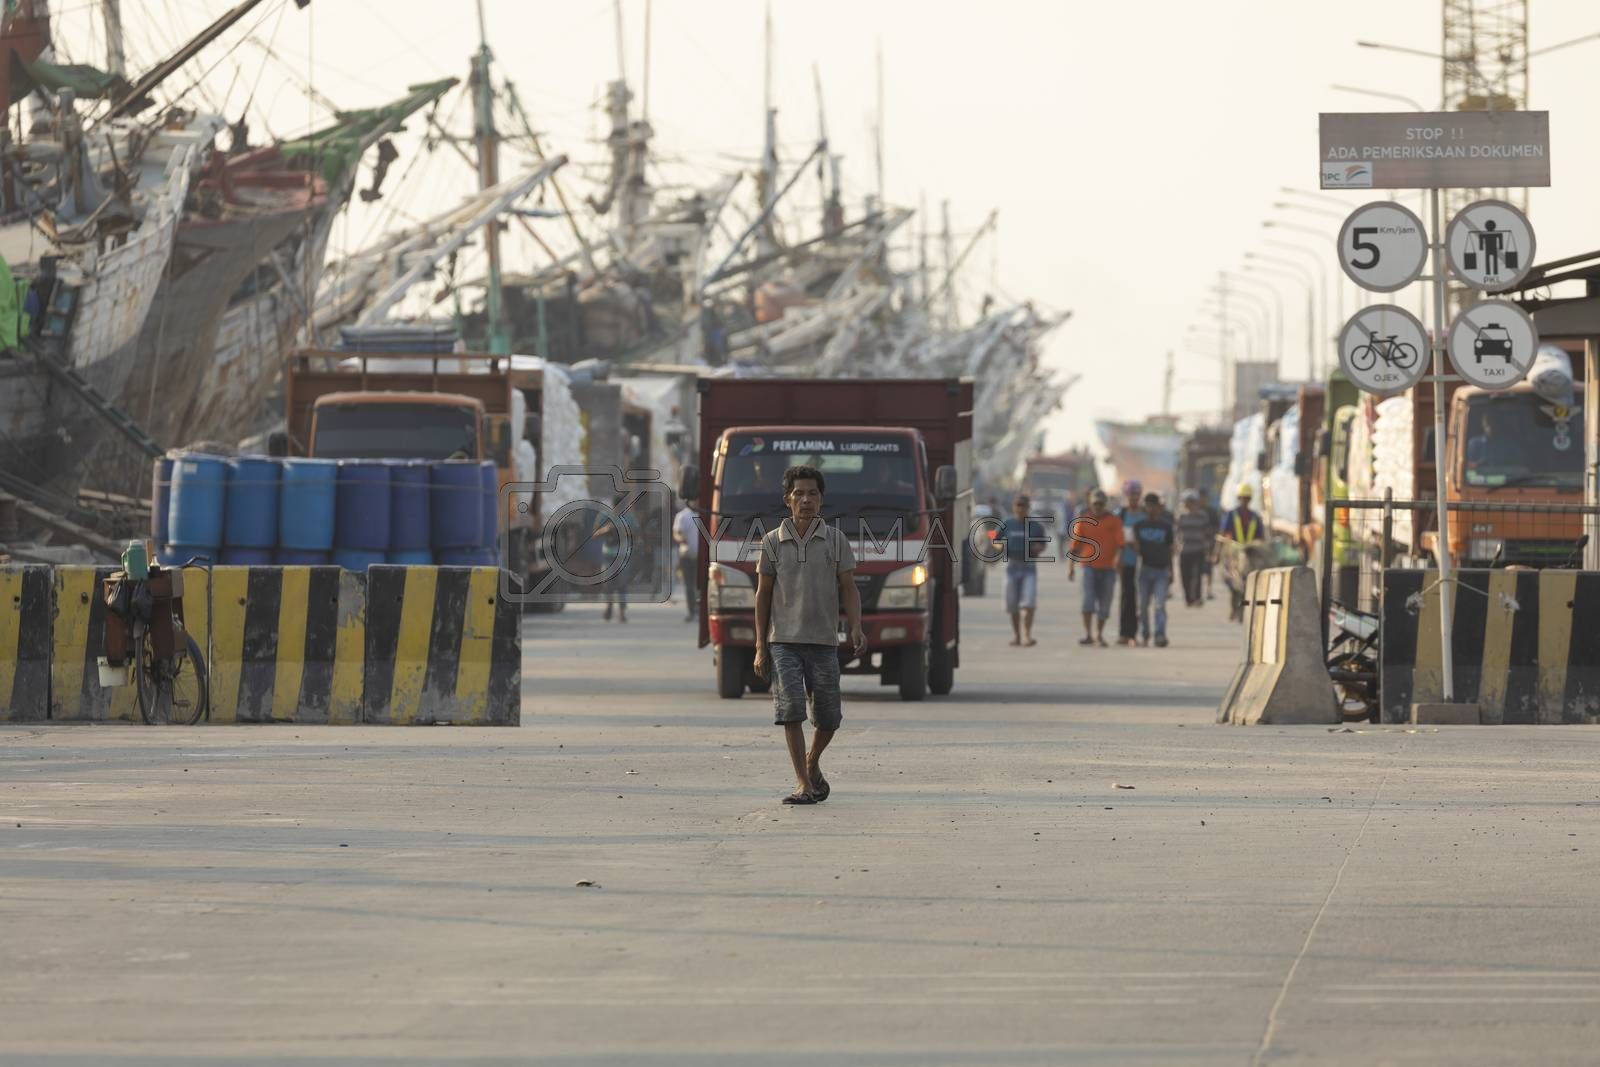 Jakarta, Sunda Kelapa Port, Indonesia - July 15, 2019: Boats, goods and workers in the port of the city of Jakarta, on the shores of Jakarta Bay.